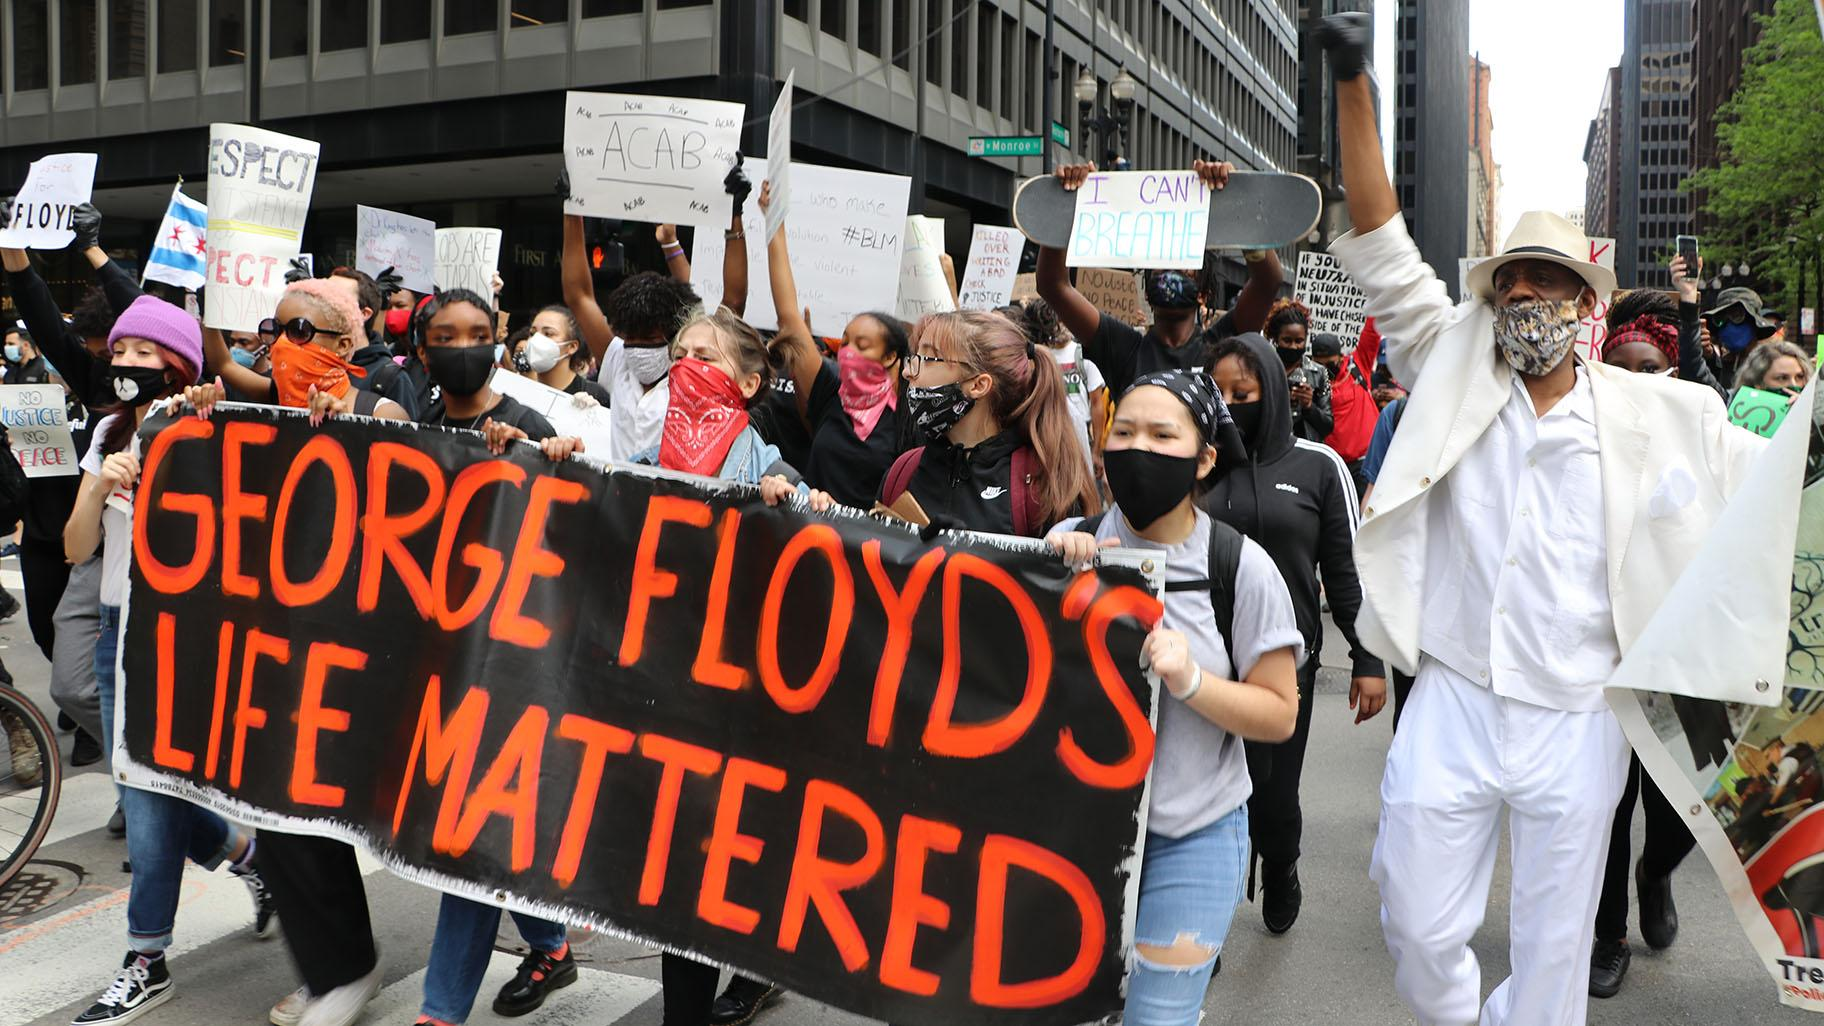 Protesters march along Dearborn Street while holding a sign honoring George Floyd on Saturday, May 30, 2020 in Chicago. (Evan Garcia / WTTW News)